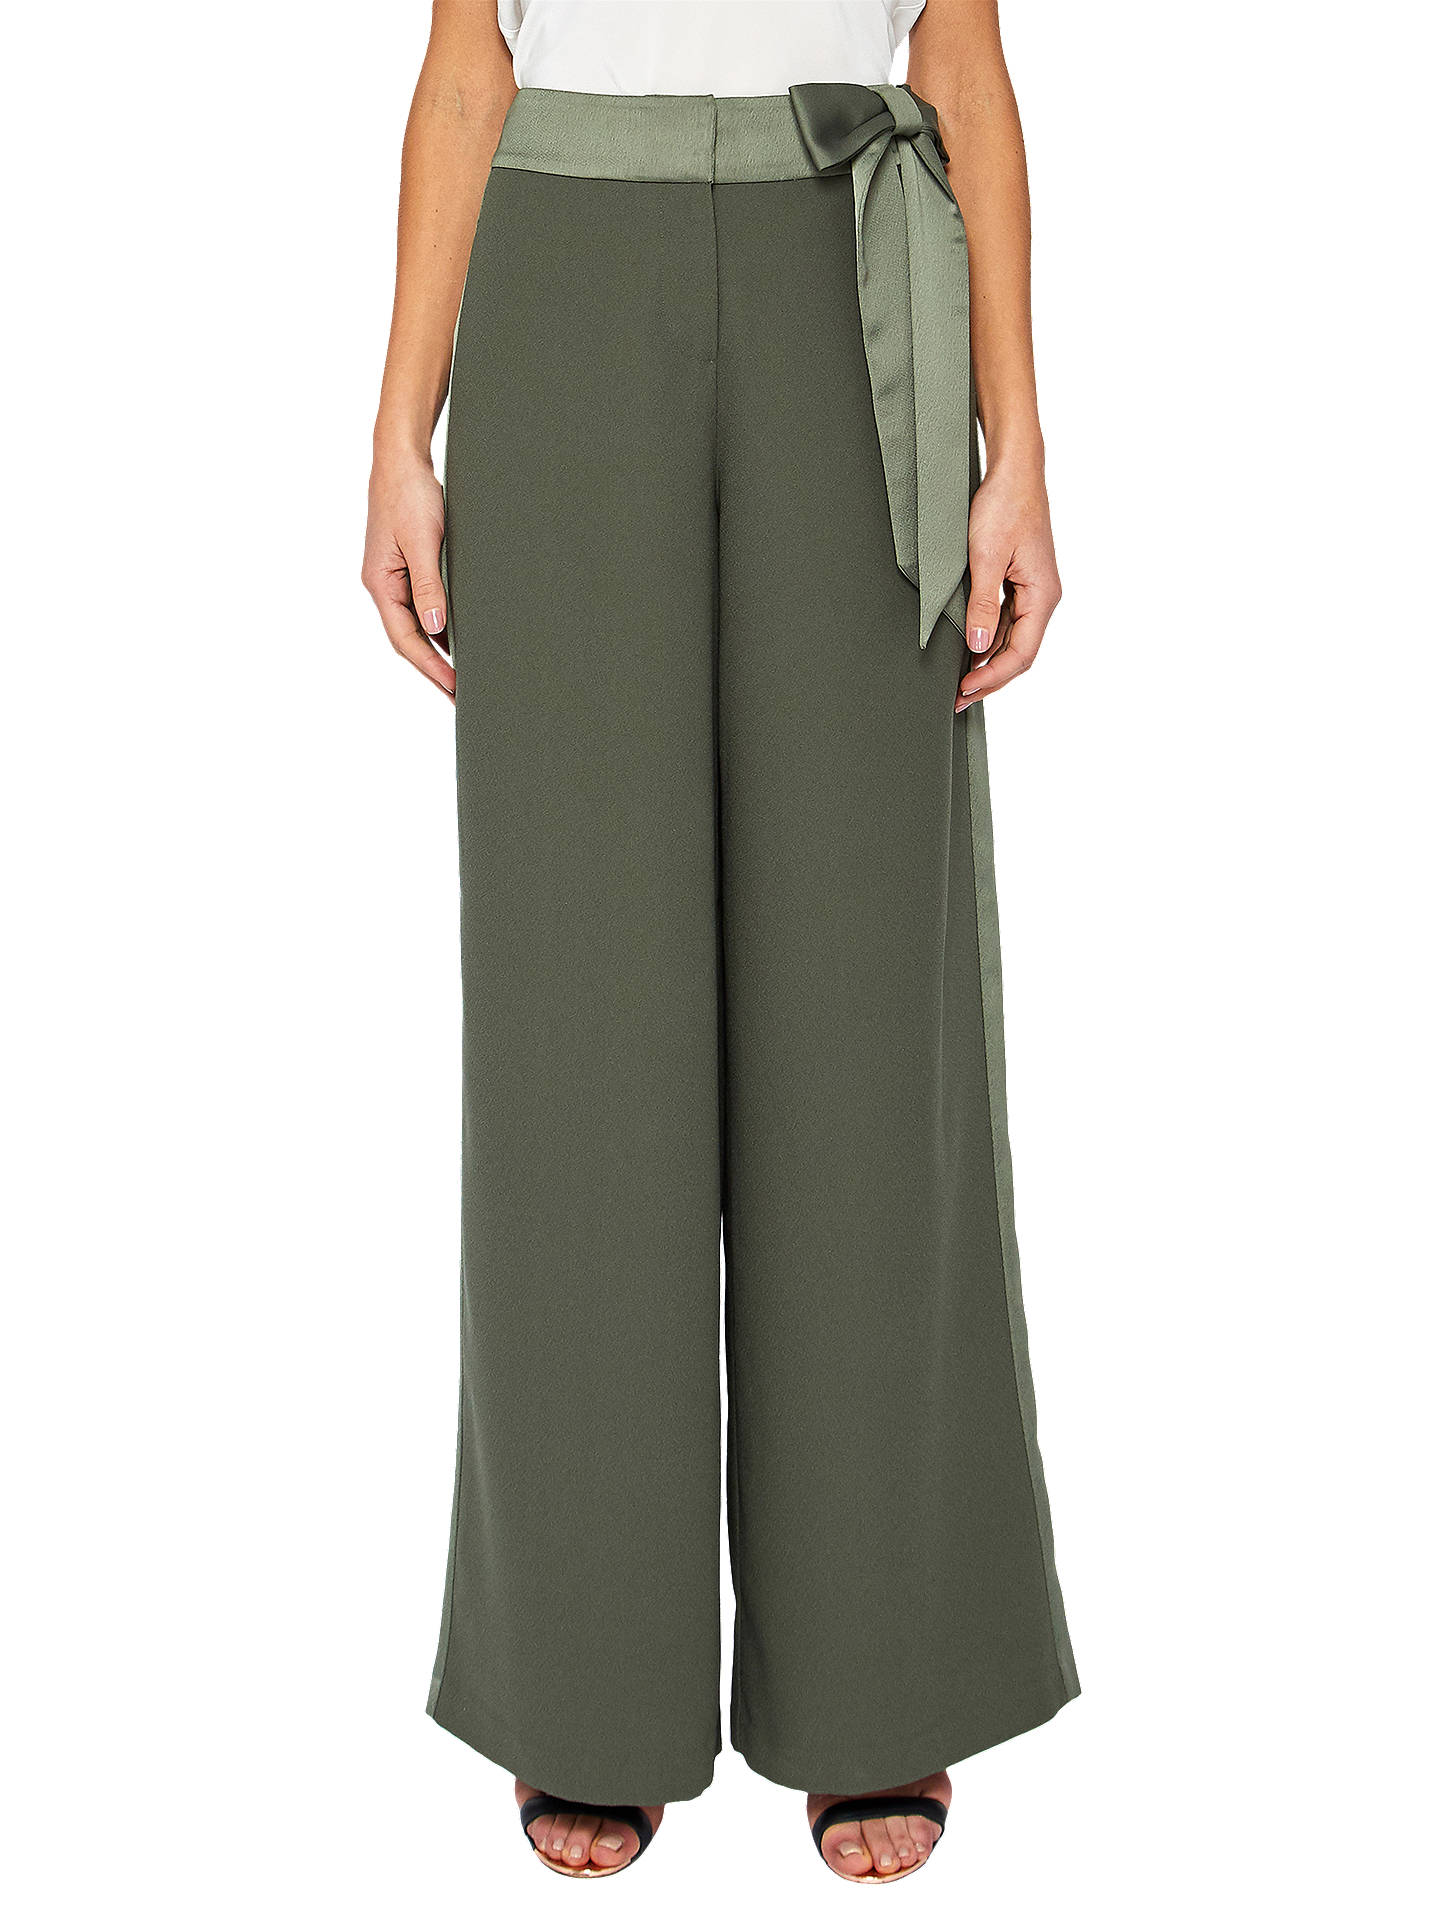 888b65a64 Buy Ted Baker Jaymi Bow Waist Wide Leg Trousers, Dark Green, 0 Online at